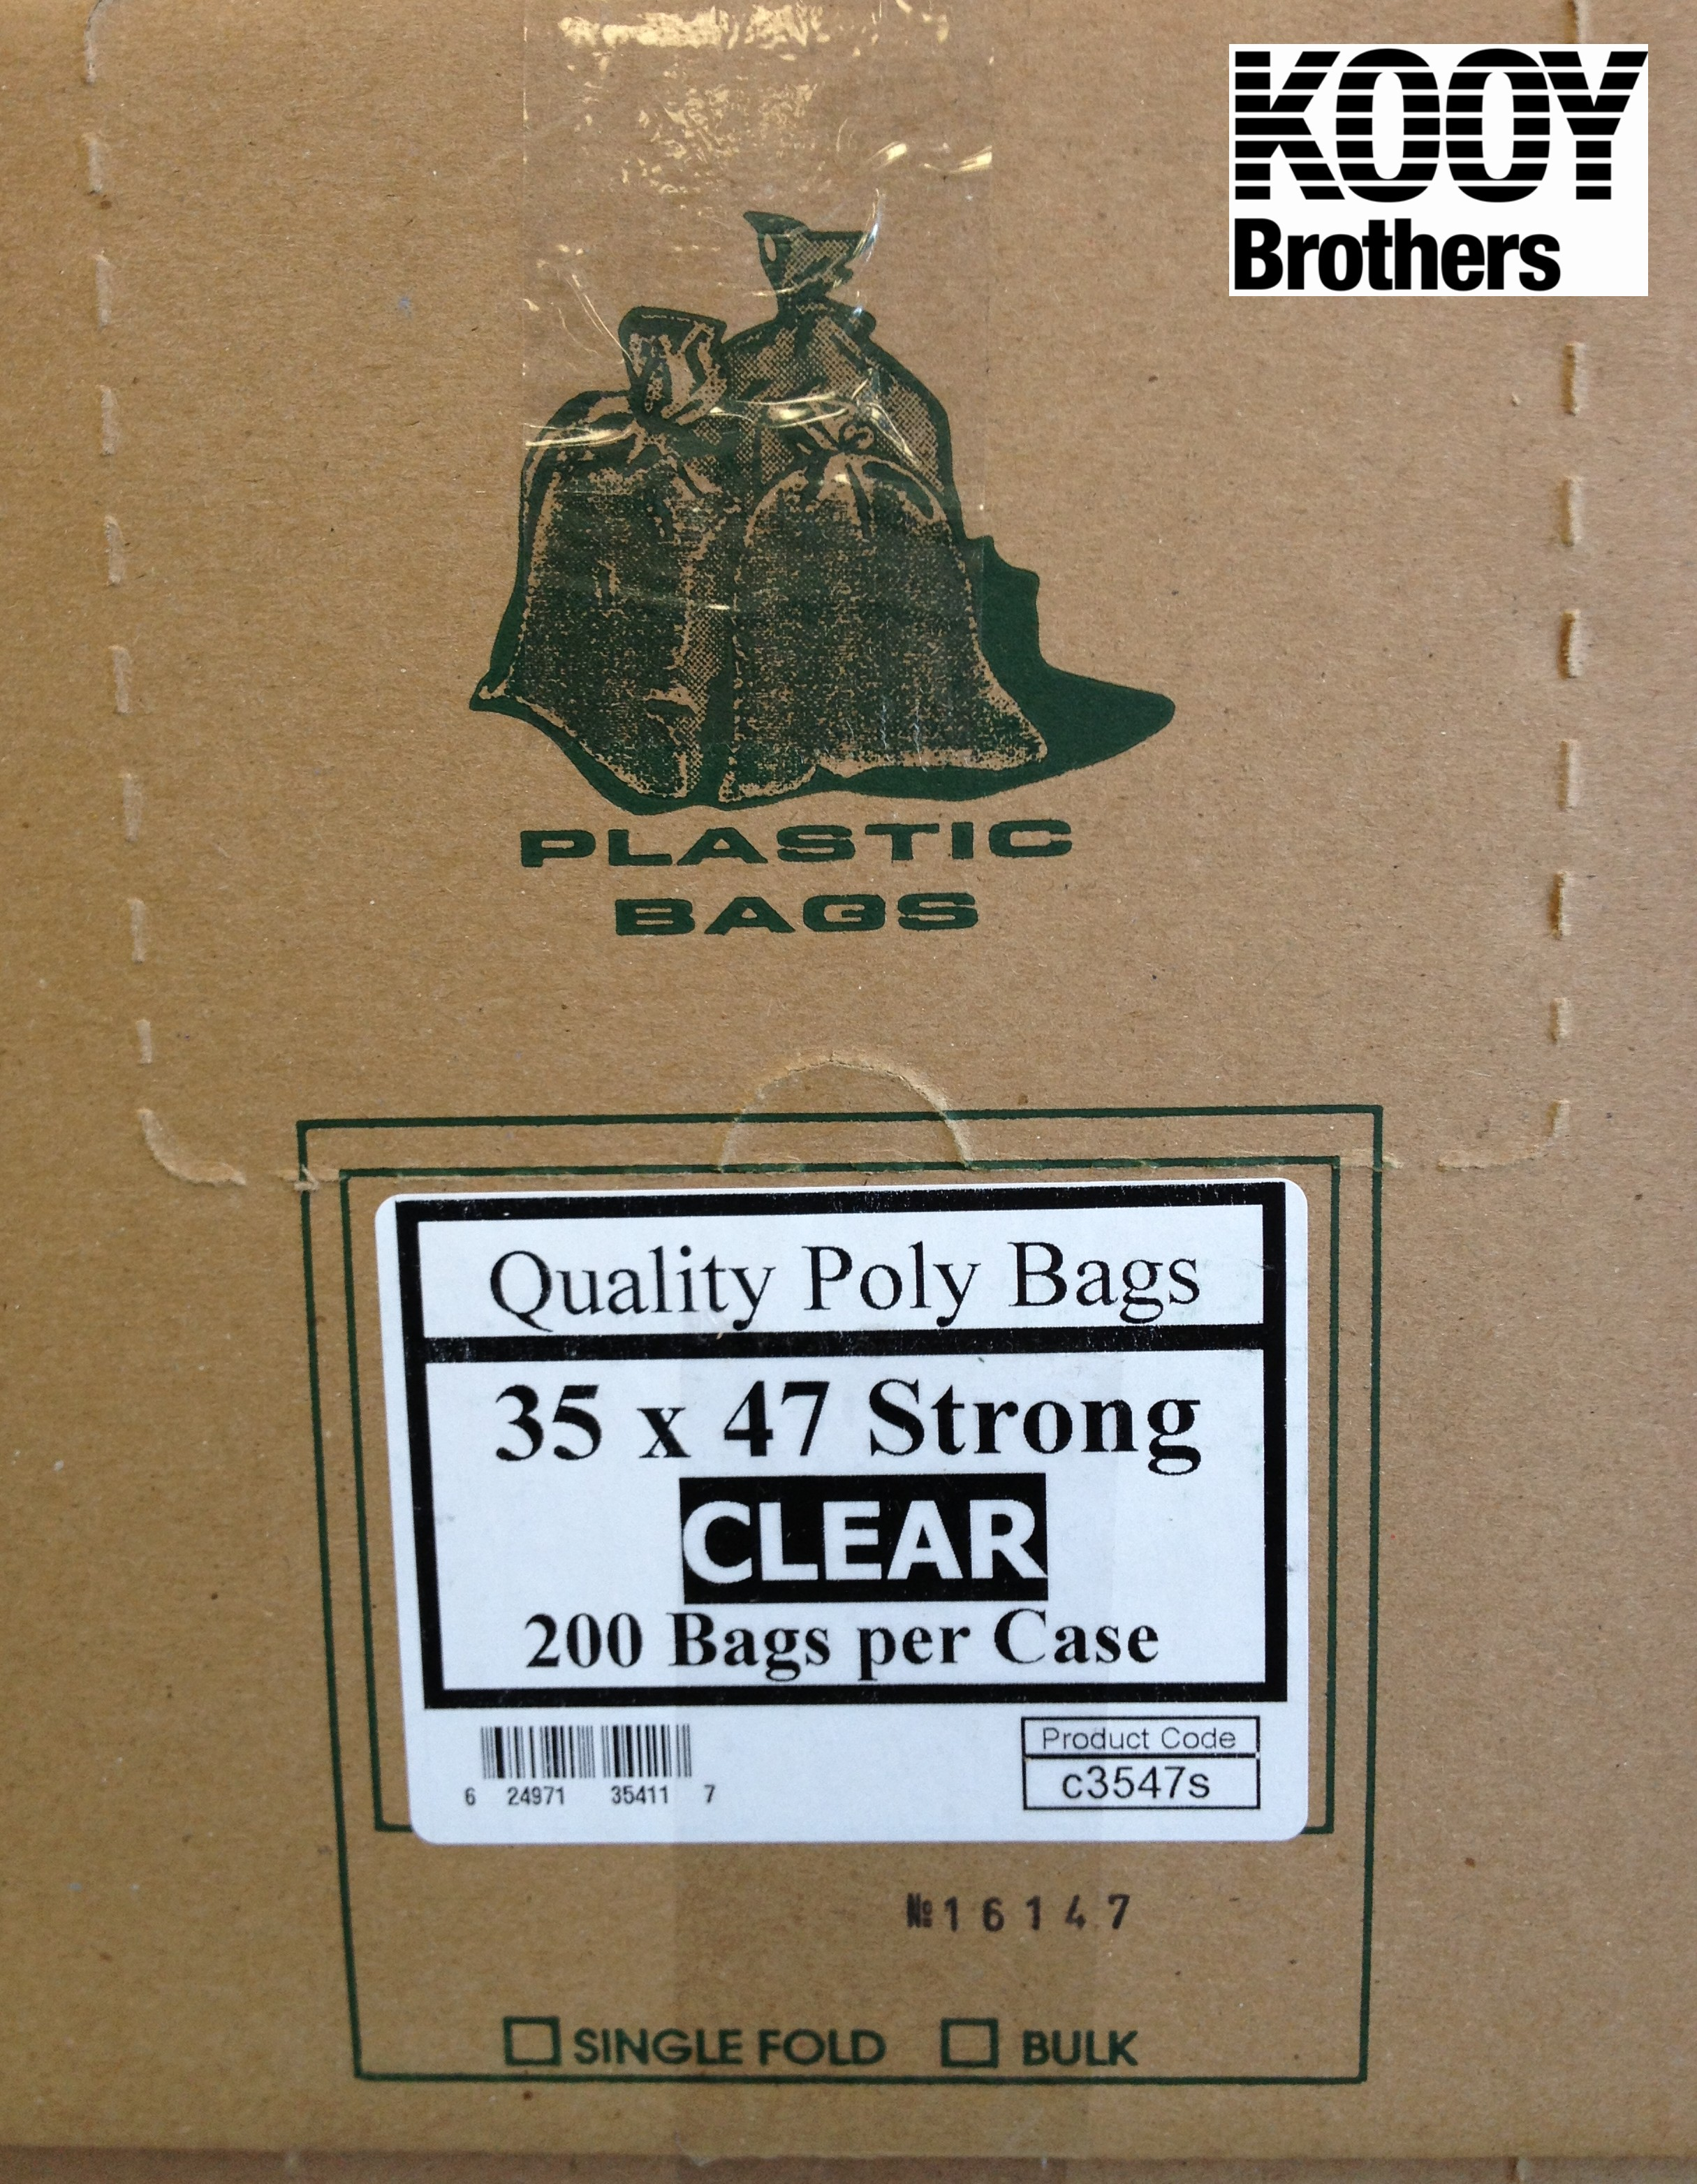 Clear Plastic Garbage Bags